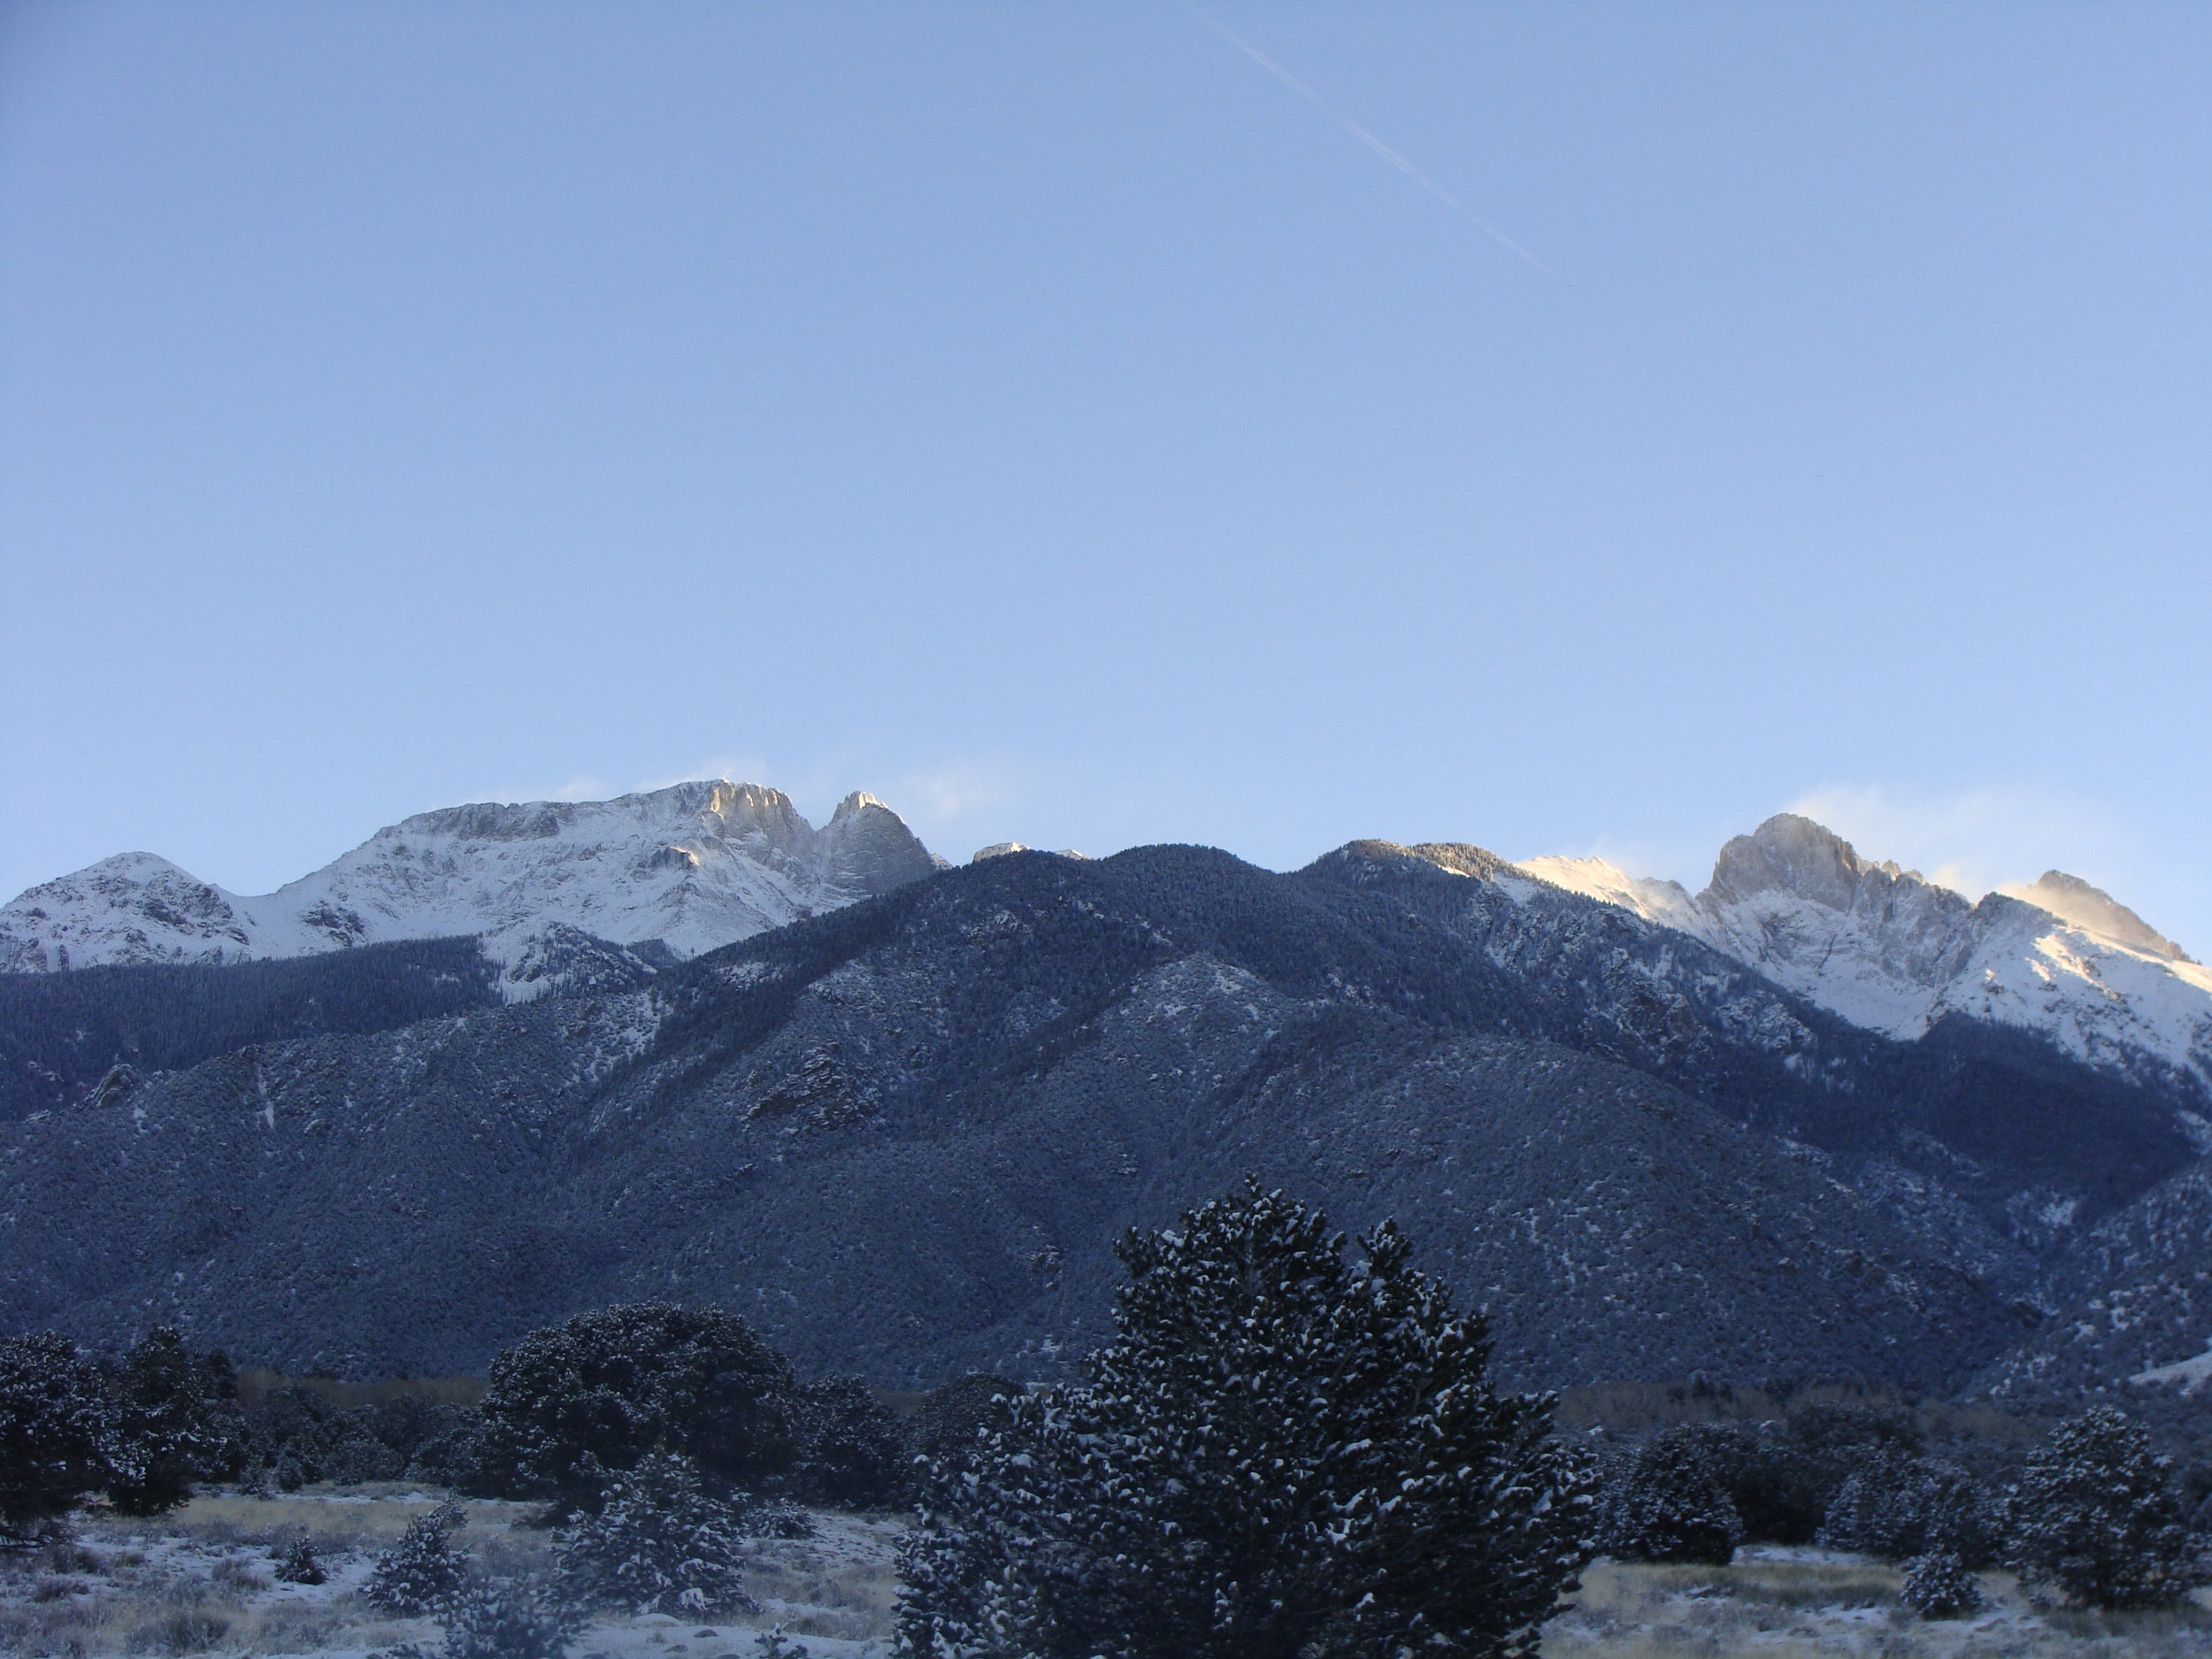 Winter Blessings from the Sangre de Cristo Mountains